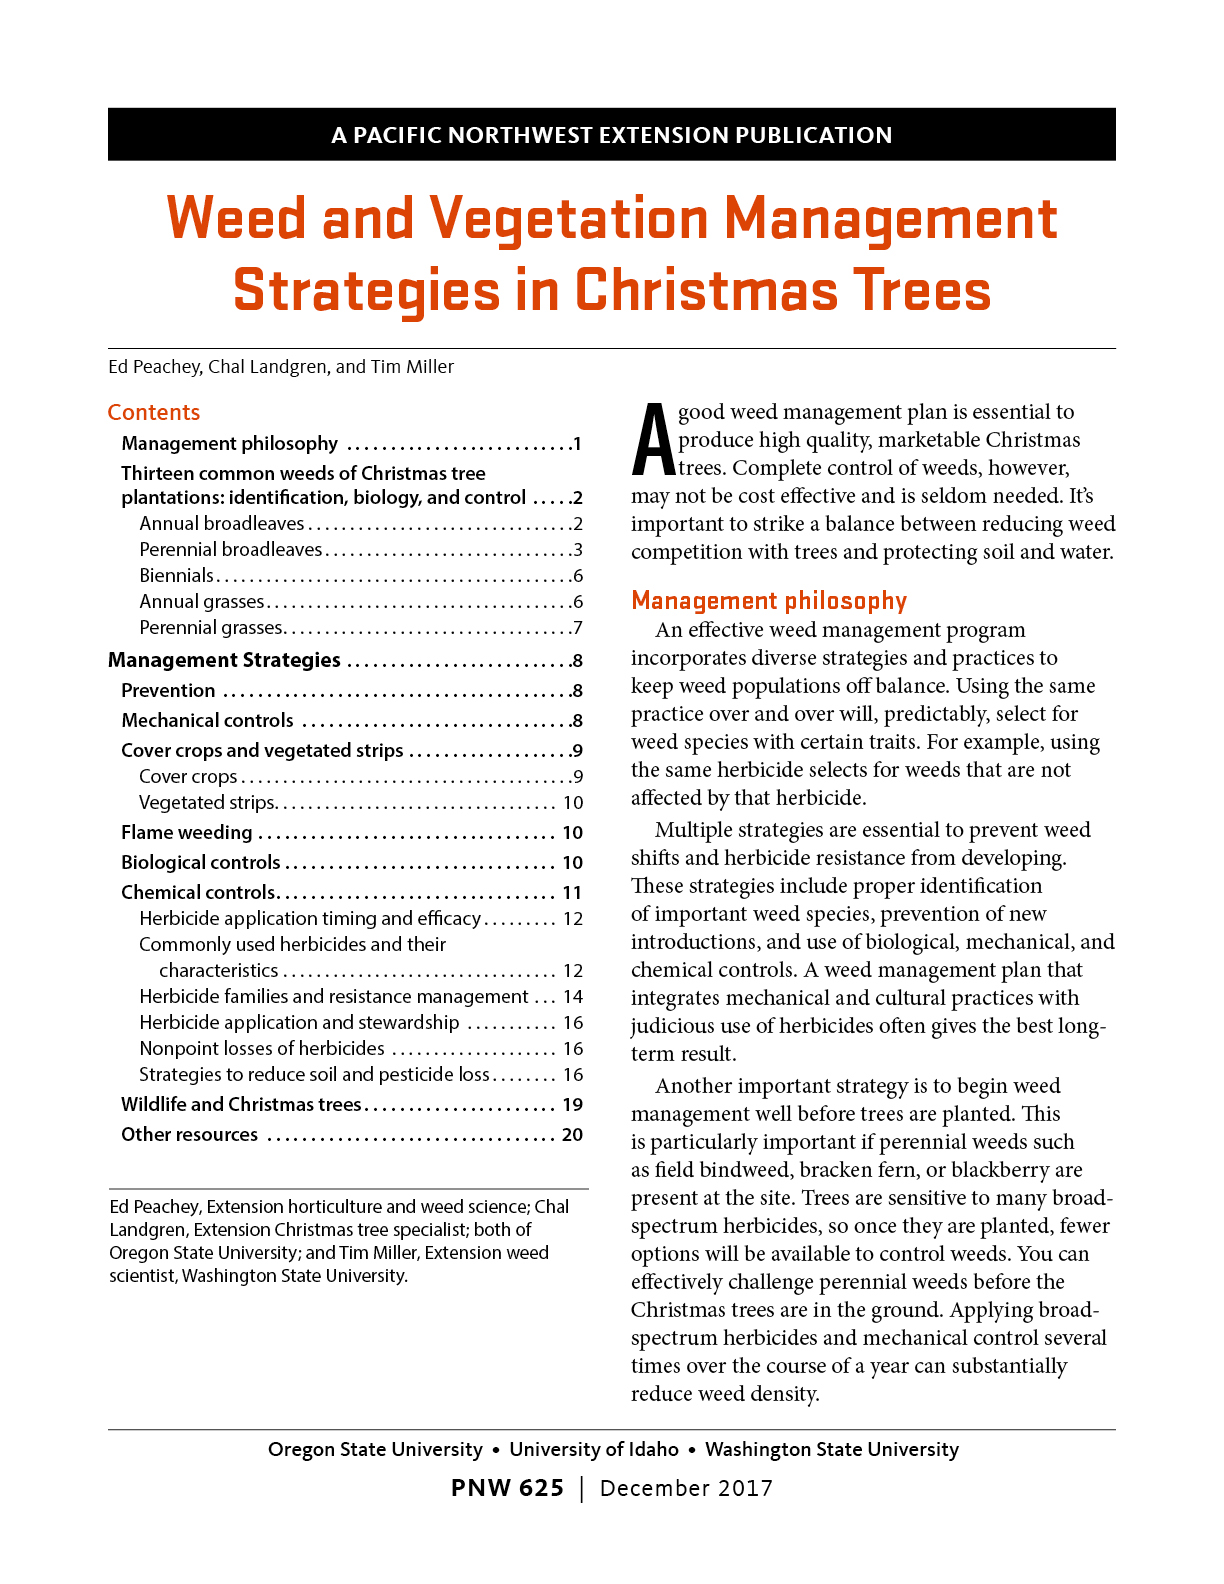 Weed And Vegetation Management Strategies In Christmas Trees Osu